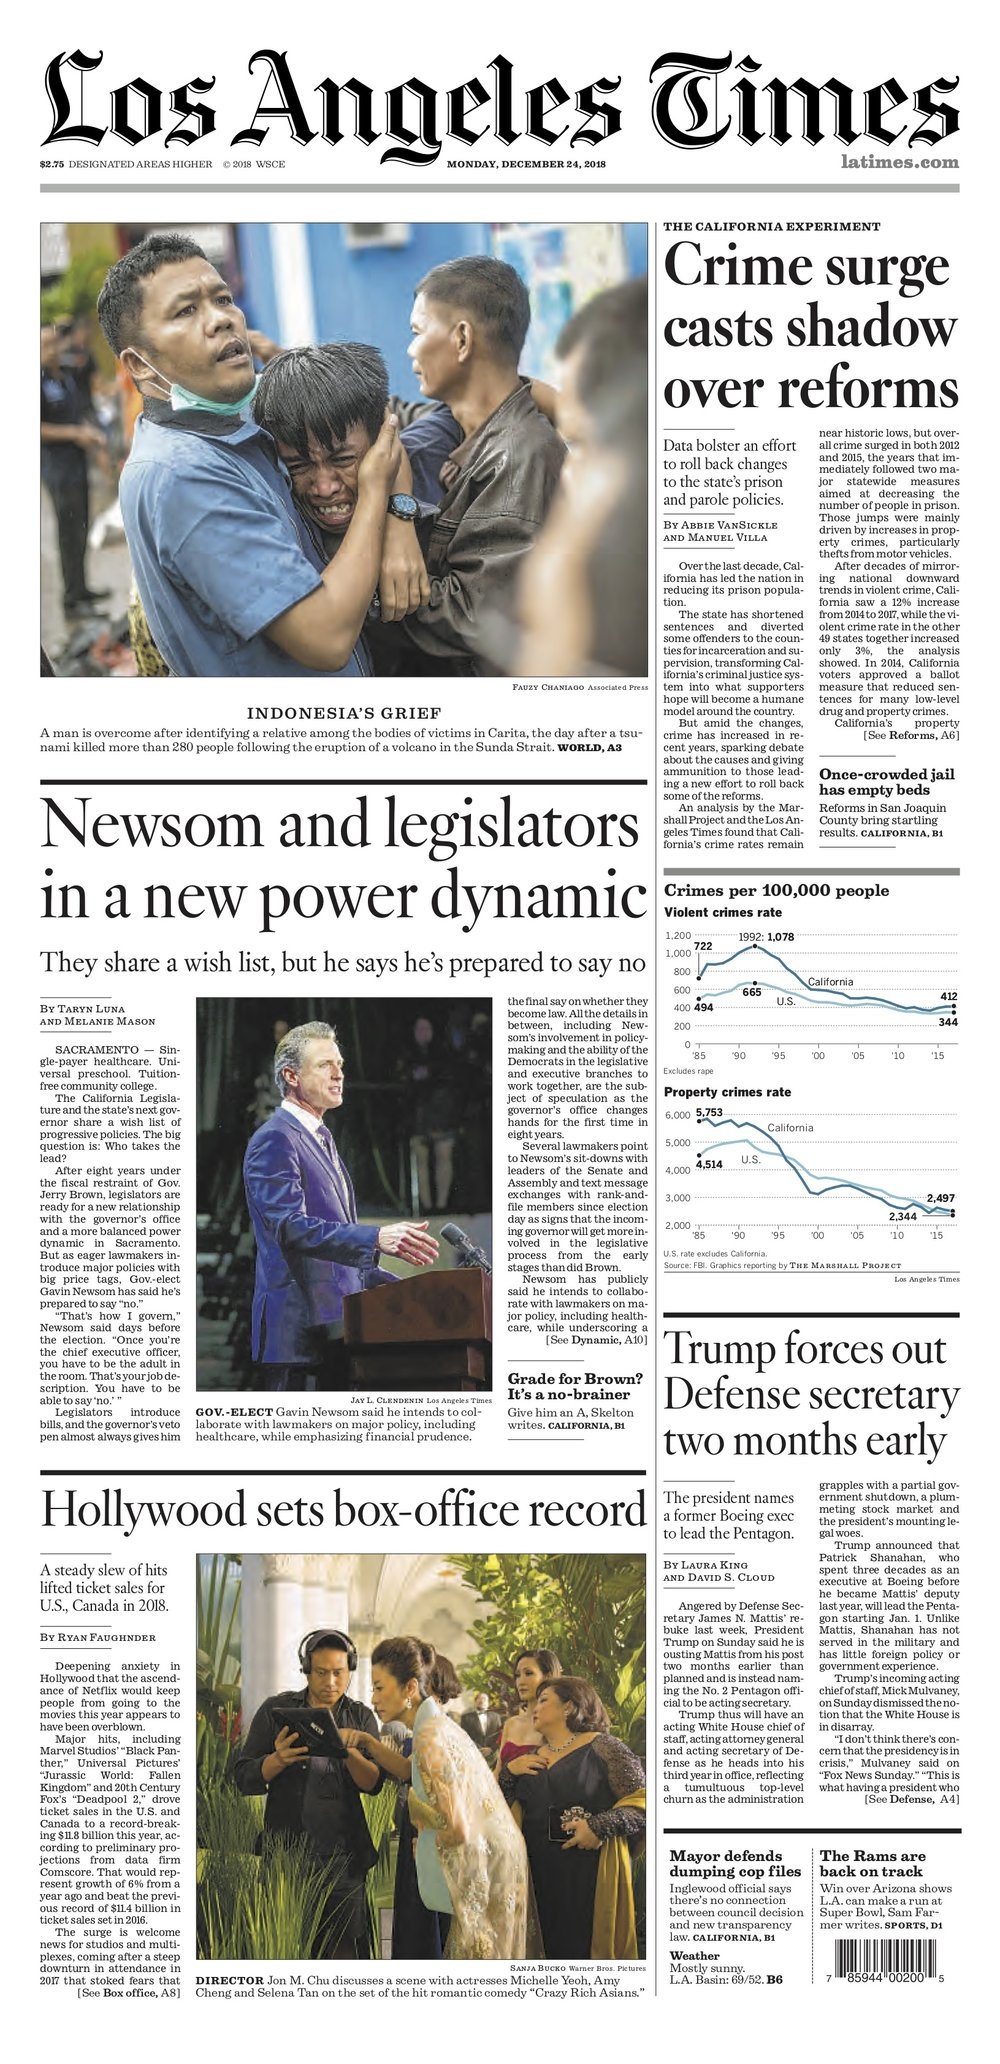 LATimes_FrontPage_122428.jpg